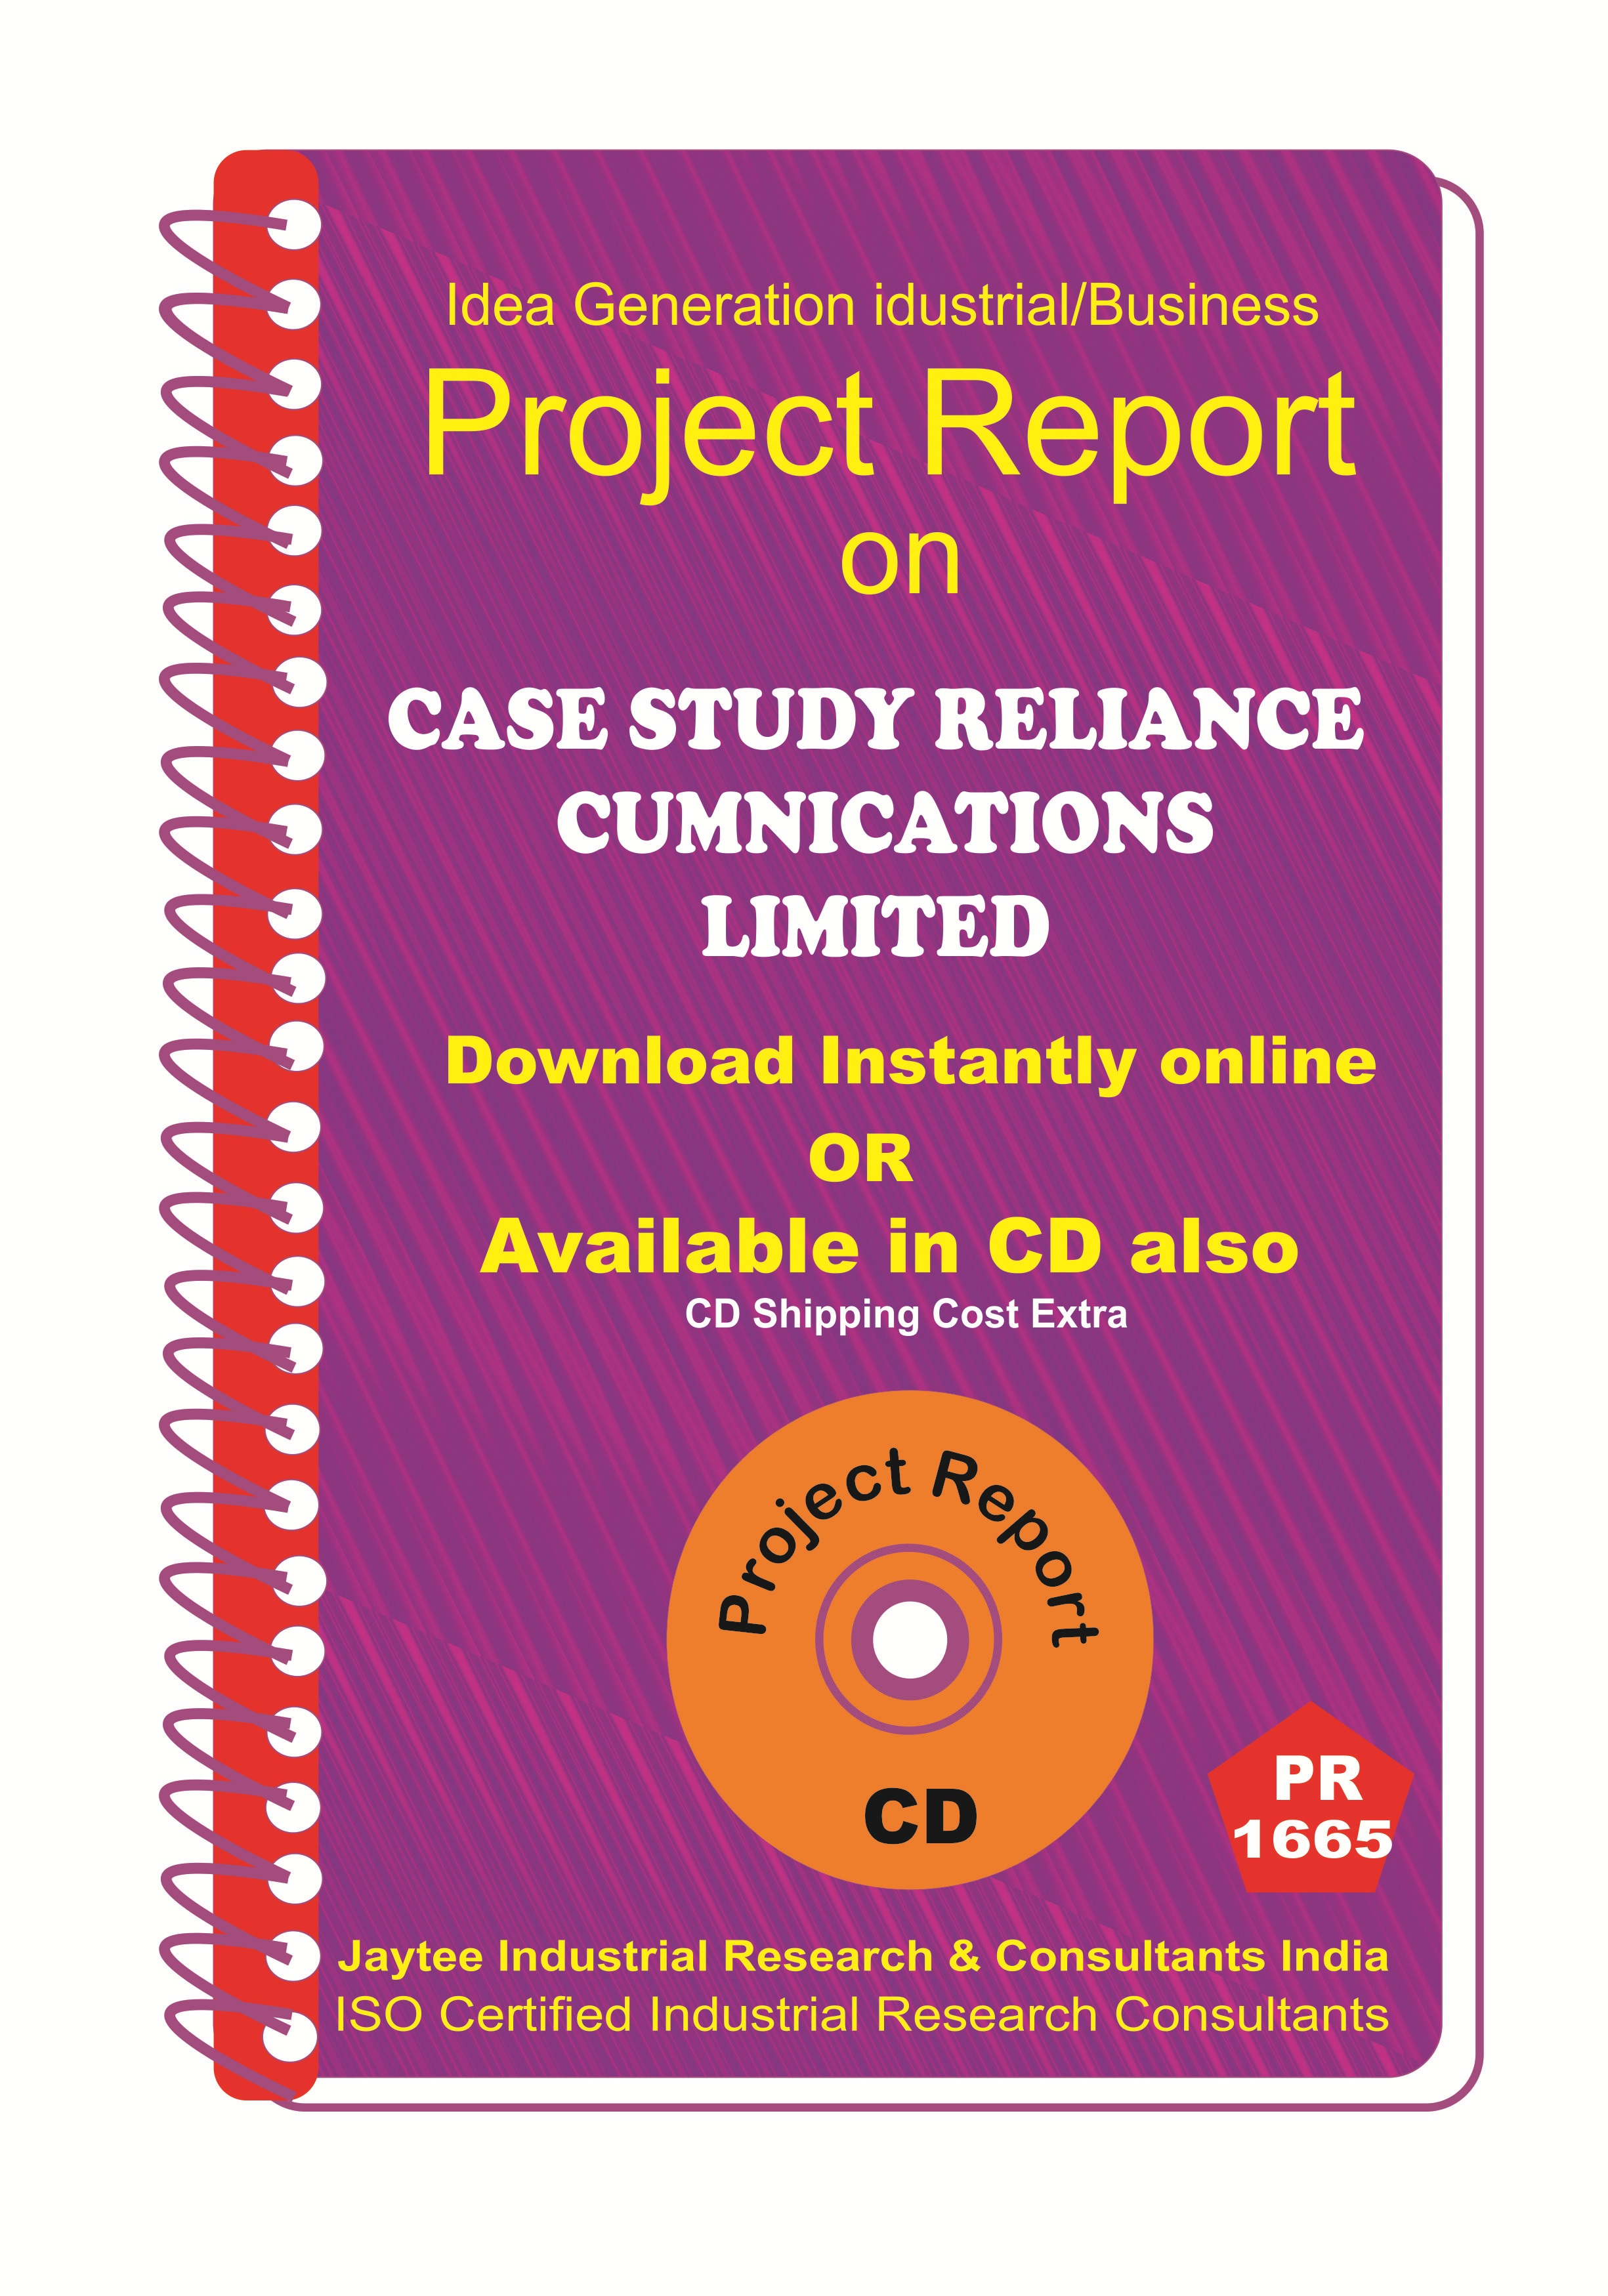 Case Study Reliance Communication Limited Project Report eBook